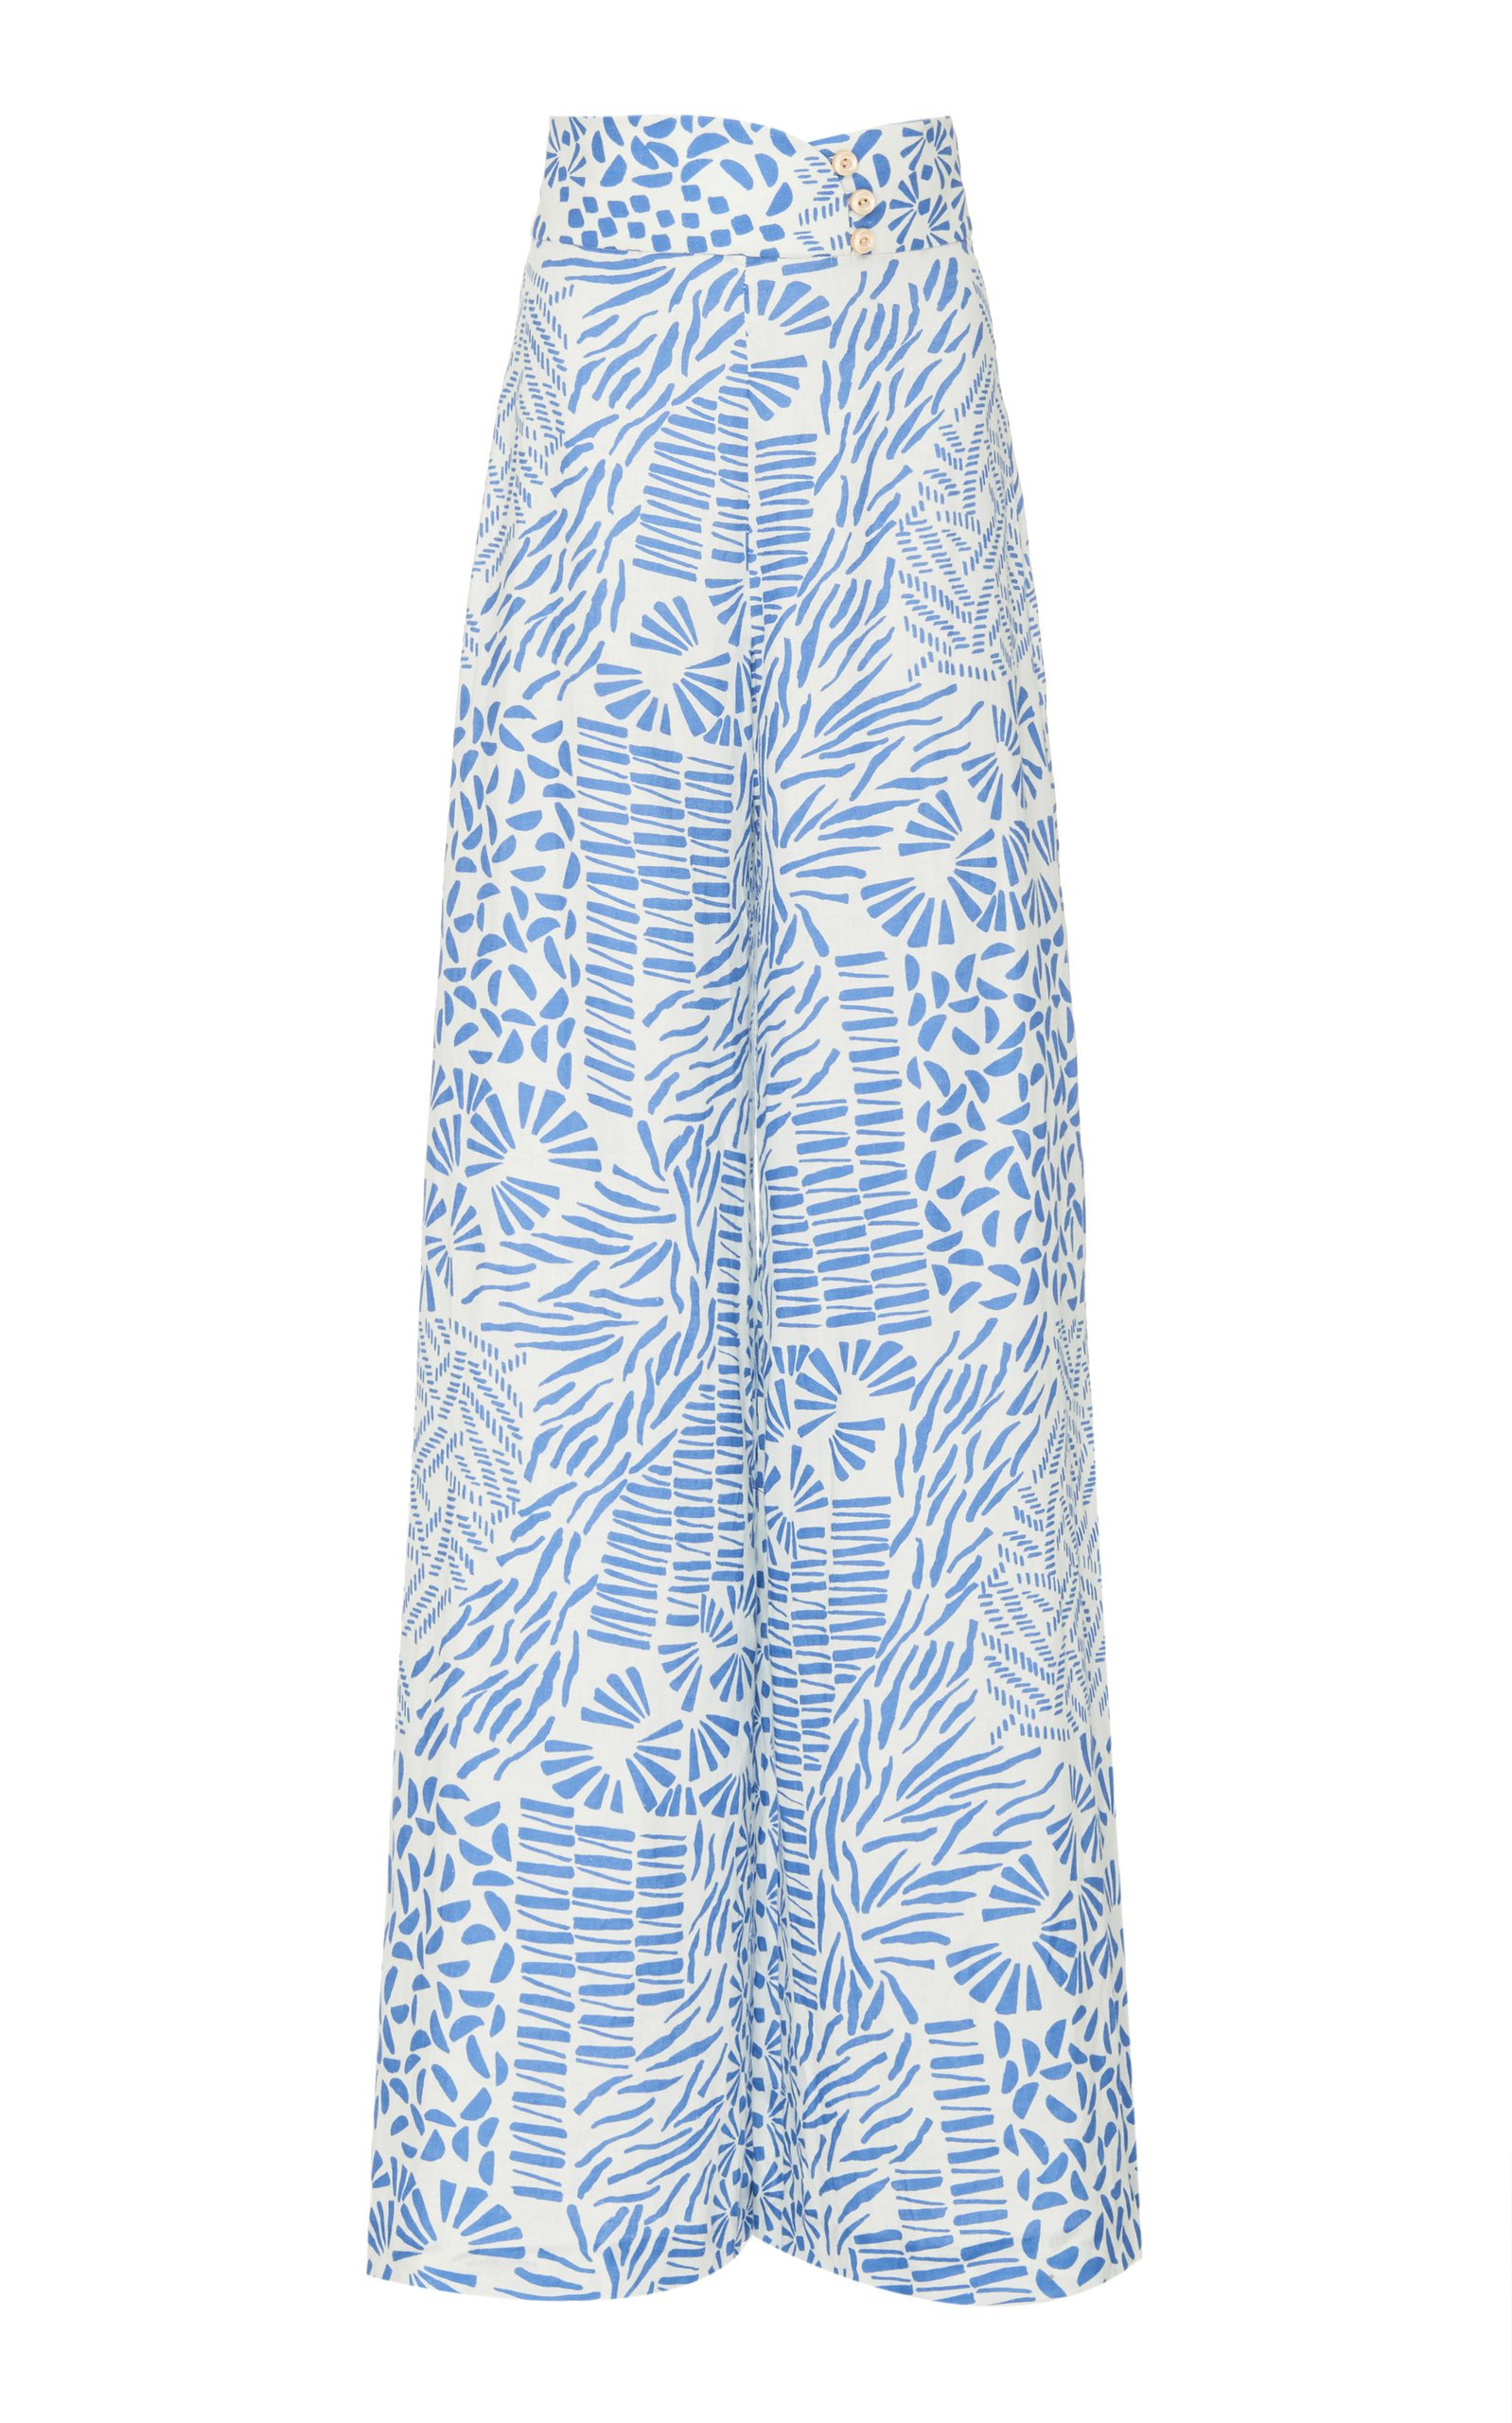 Alexis Neassa High Waisted Cotton Flare Pant Size: S